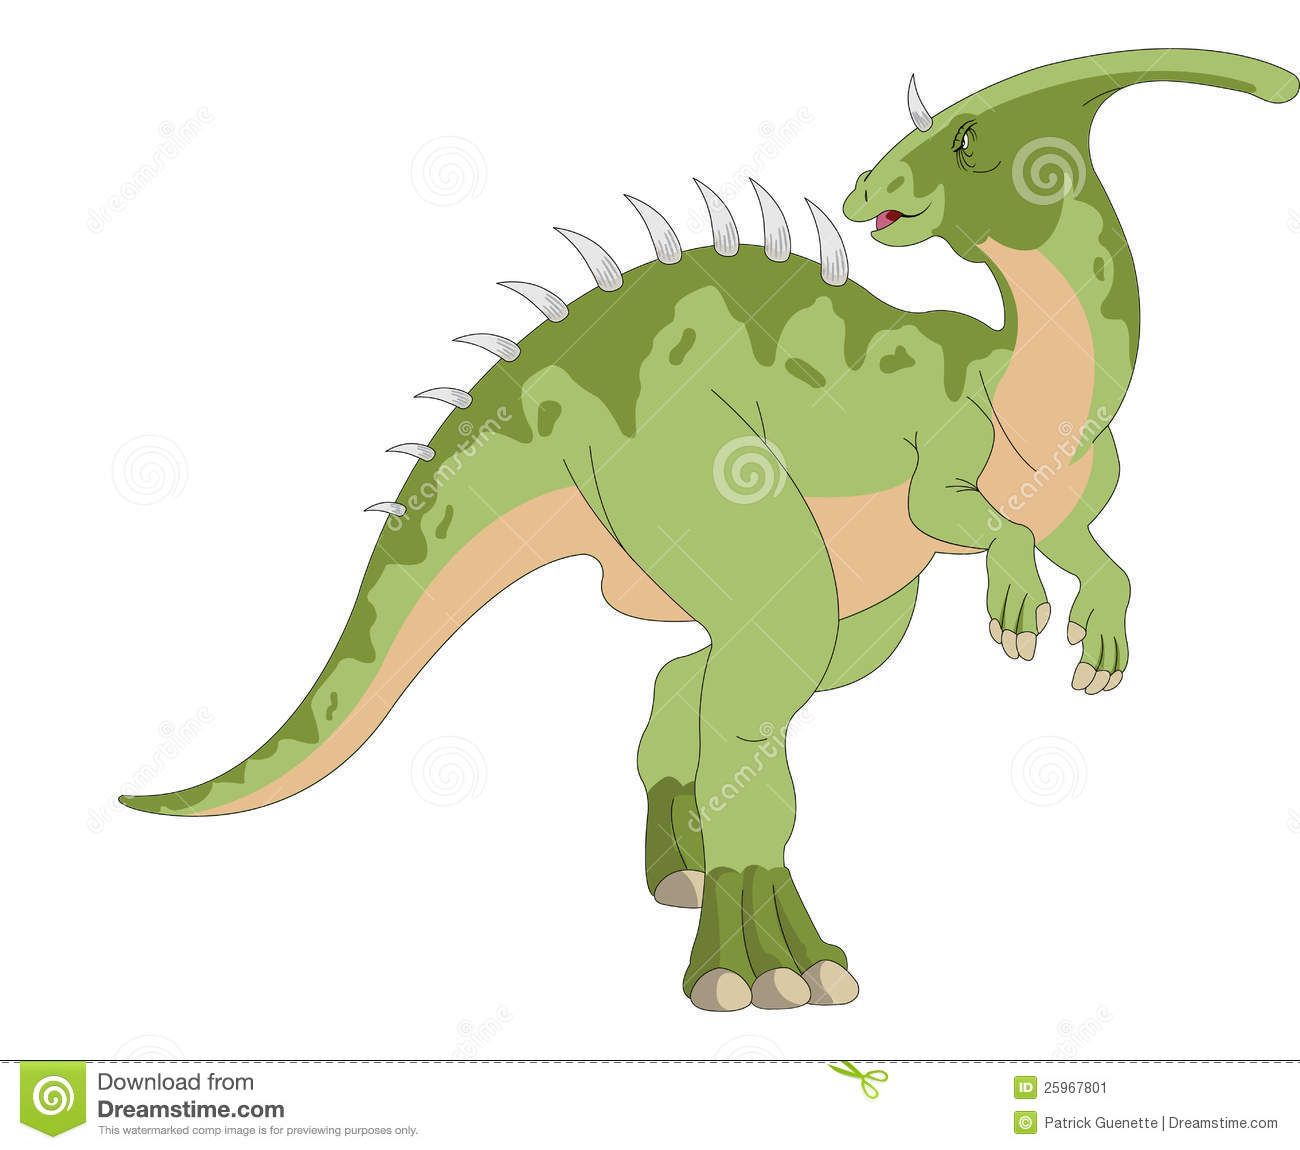 realistic dinosaur drawing - Google Search | Dinosaurs Silhouettes ...